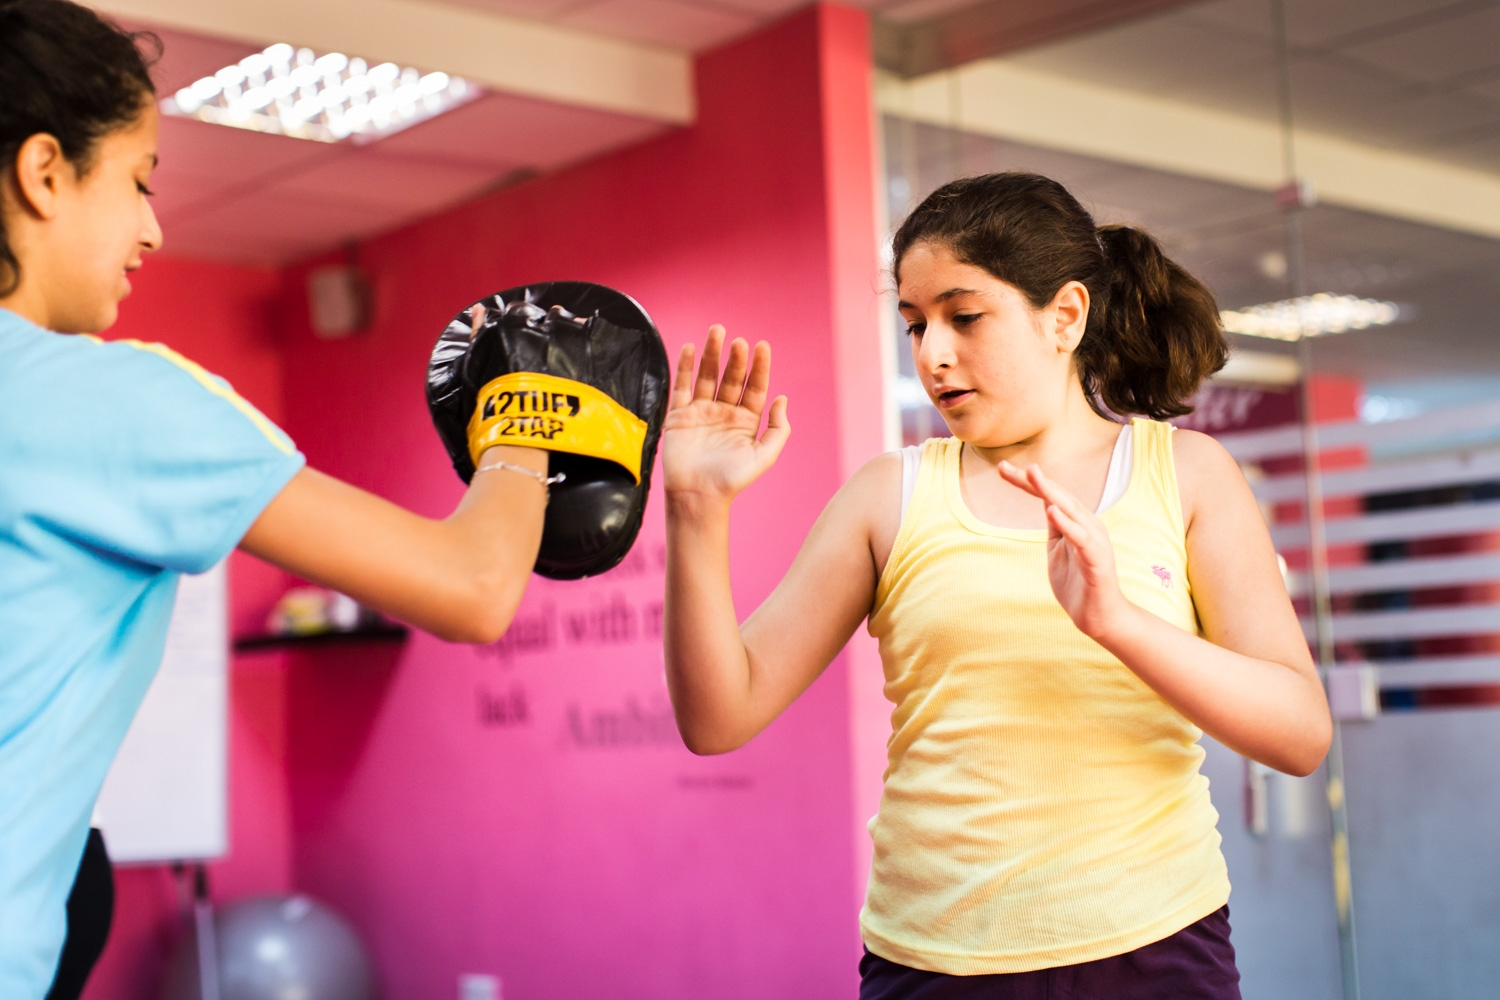 Reem Habib and Sana Kayyali practice different punching and kicking techniques in a self defense course at She Fighter in Amman, Jordan, on August 21, 2015. The She Fighter studio was founded by Lina Khalifeh, and offers self defense classes to young women to protect against harrassment.